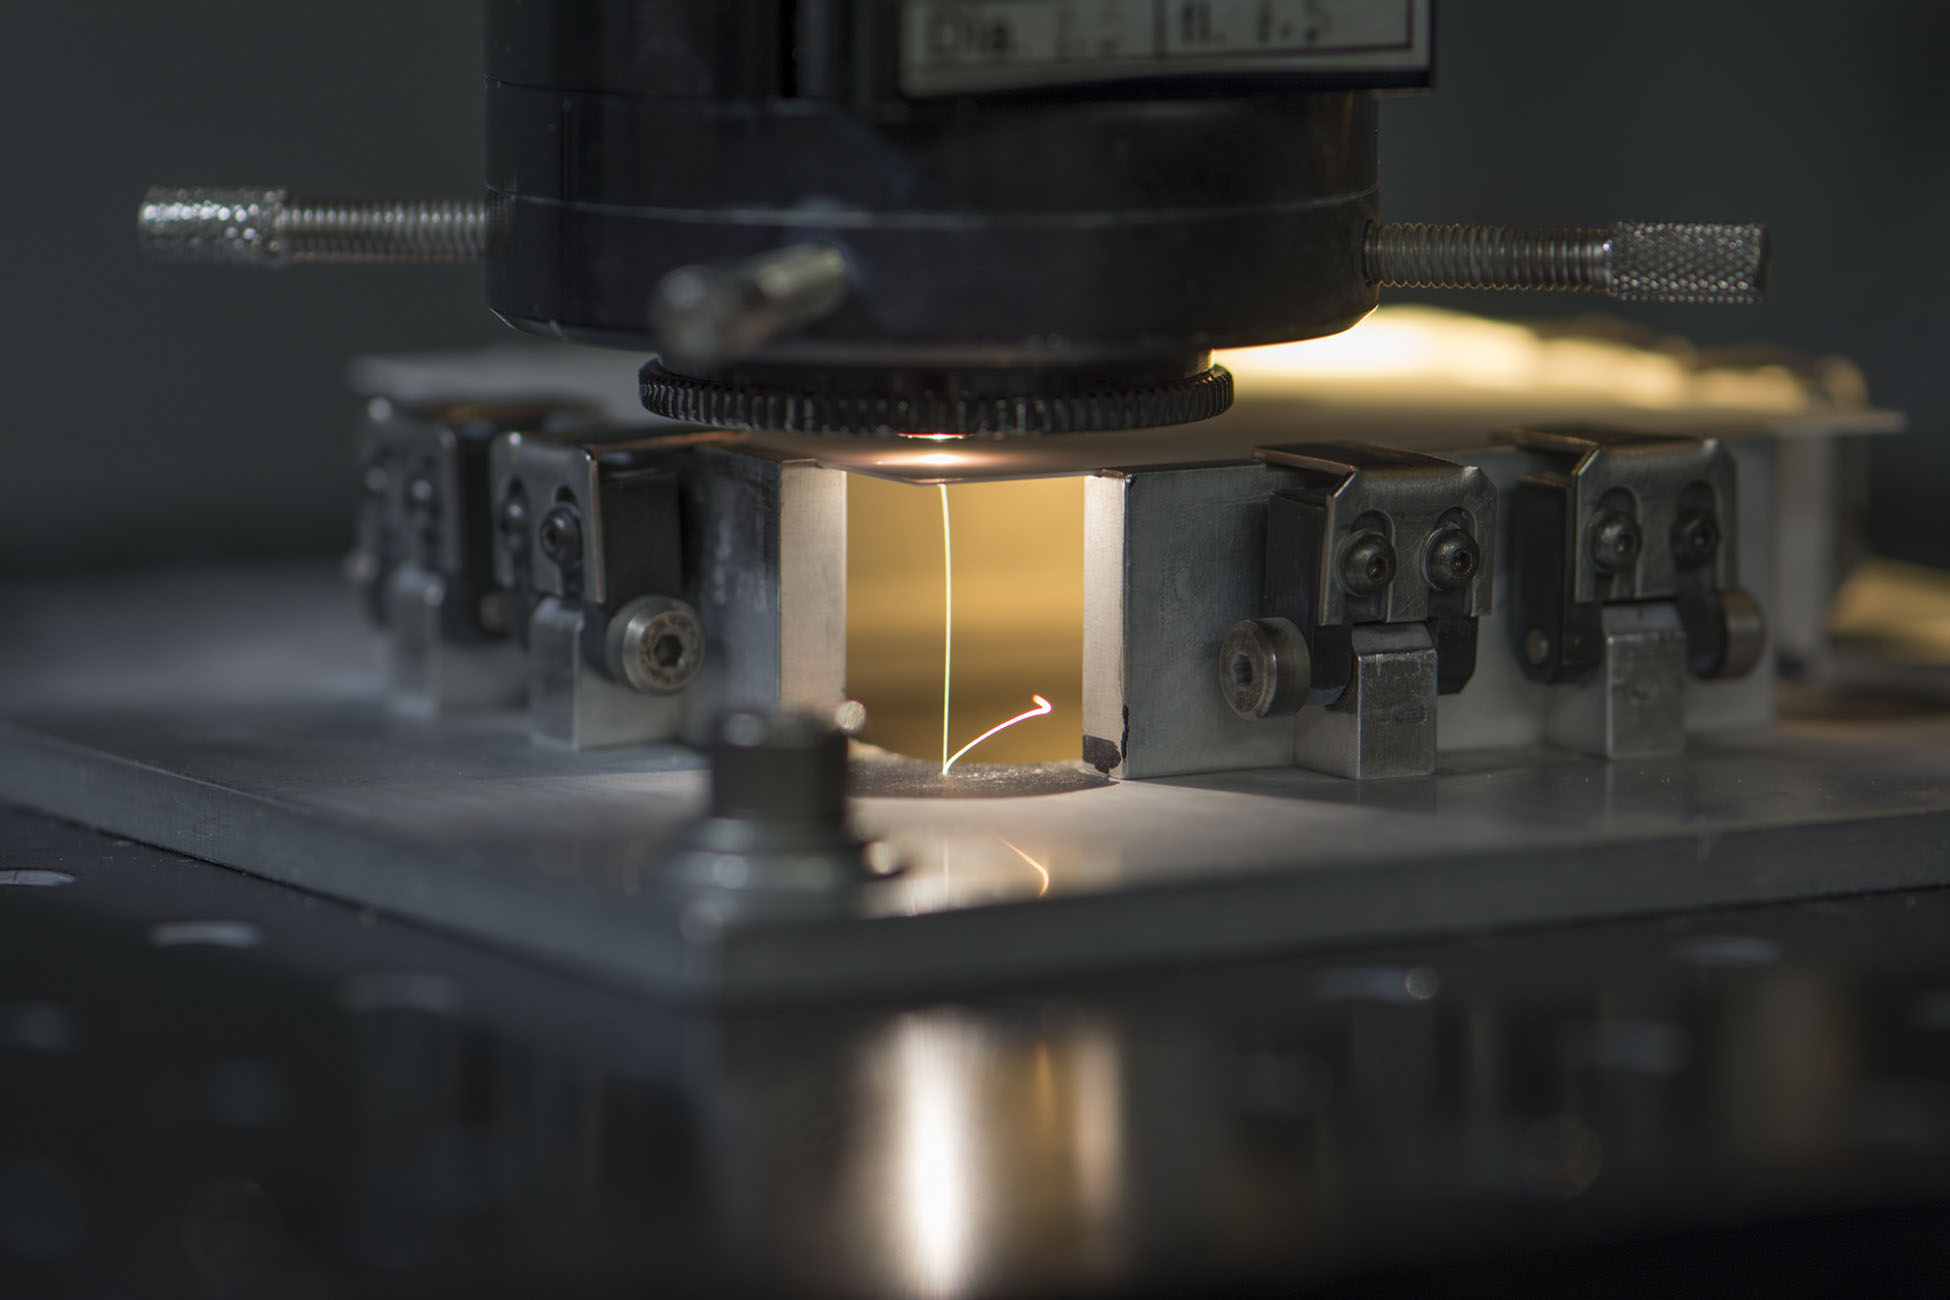 Laser machining of thin film substrate materials